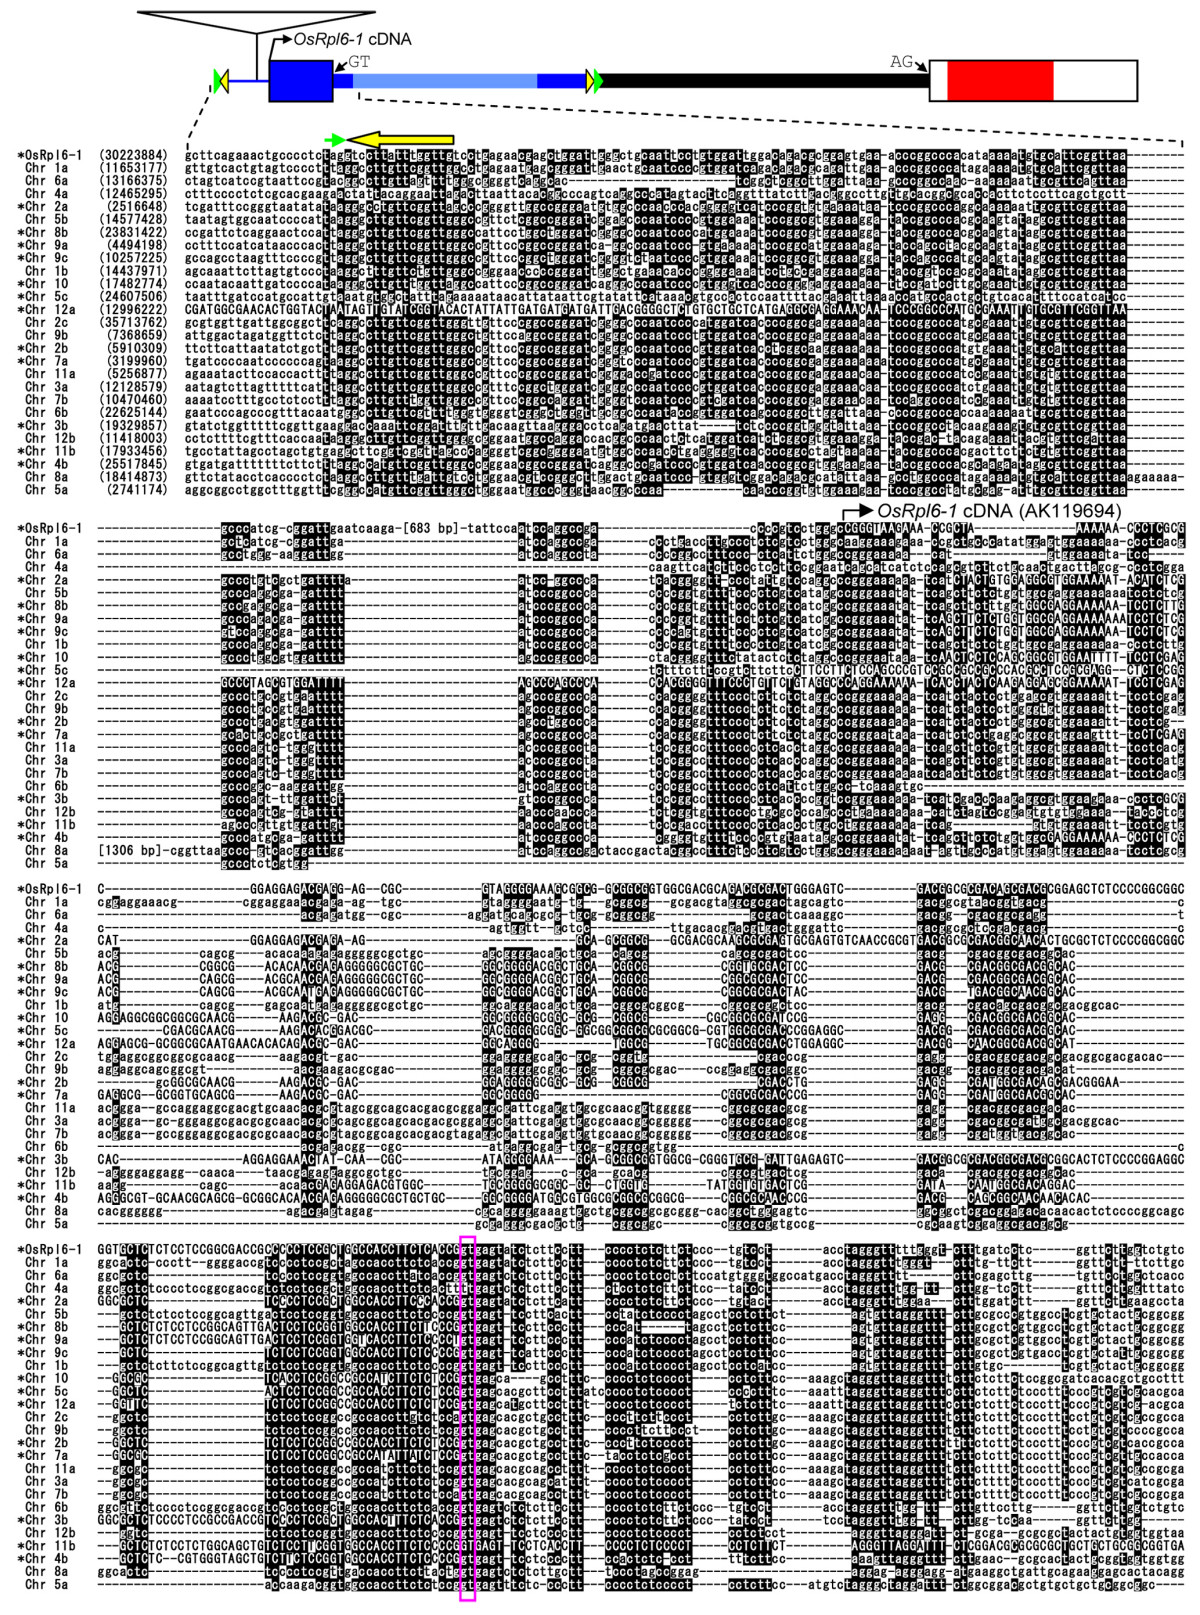 https://static-content.springer.com/image/art%3A10.1186%2F1471-2148-8-314/MediaObjects/12862_2008_Article_883_Fig4_HTML.jpg